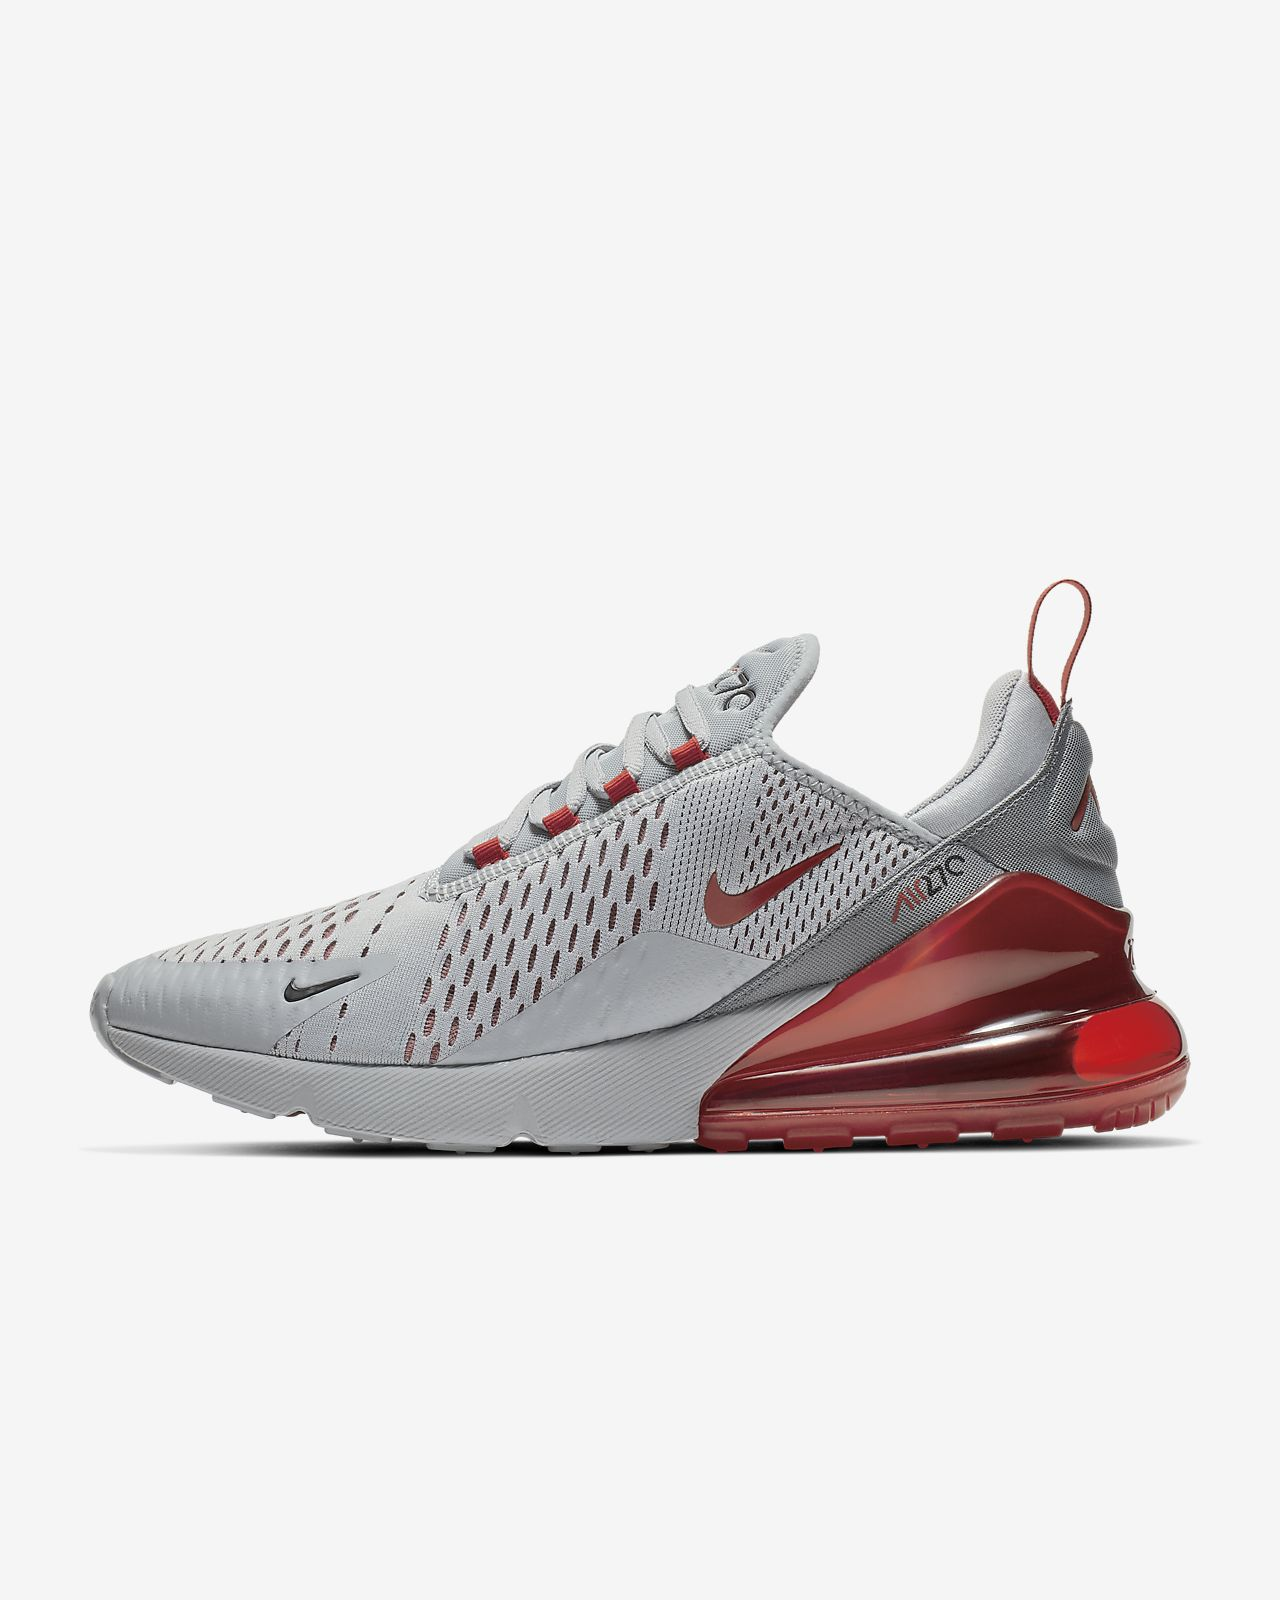 promo code 0cb3c 21daf Nike Air Max 270 Men's Shoe. Nike.com GB